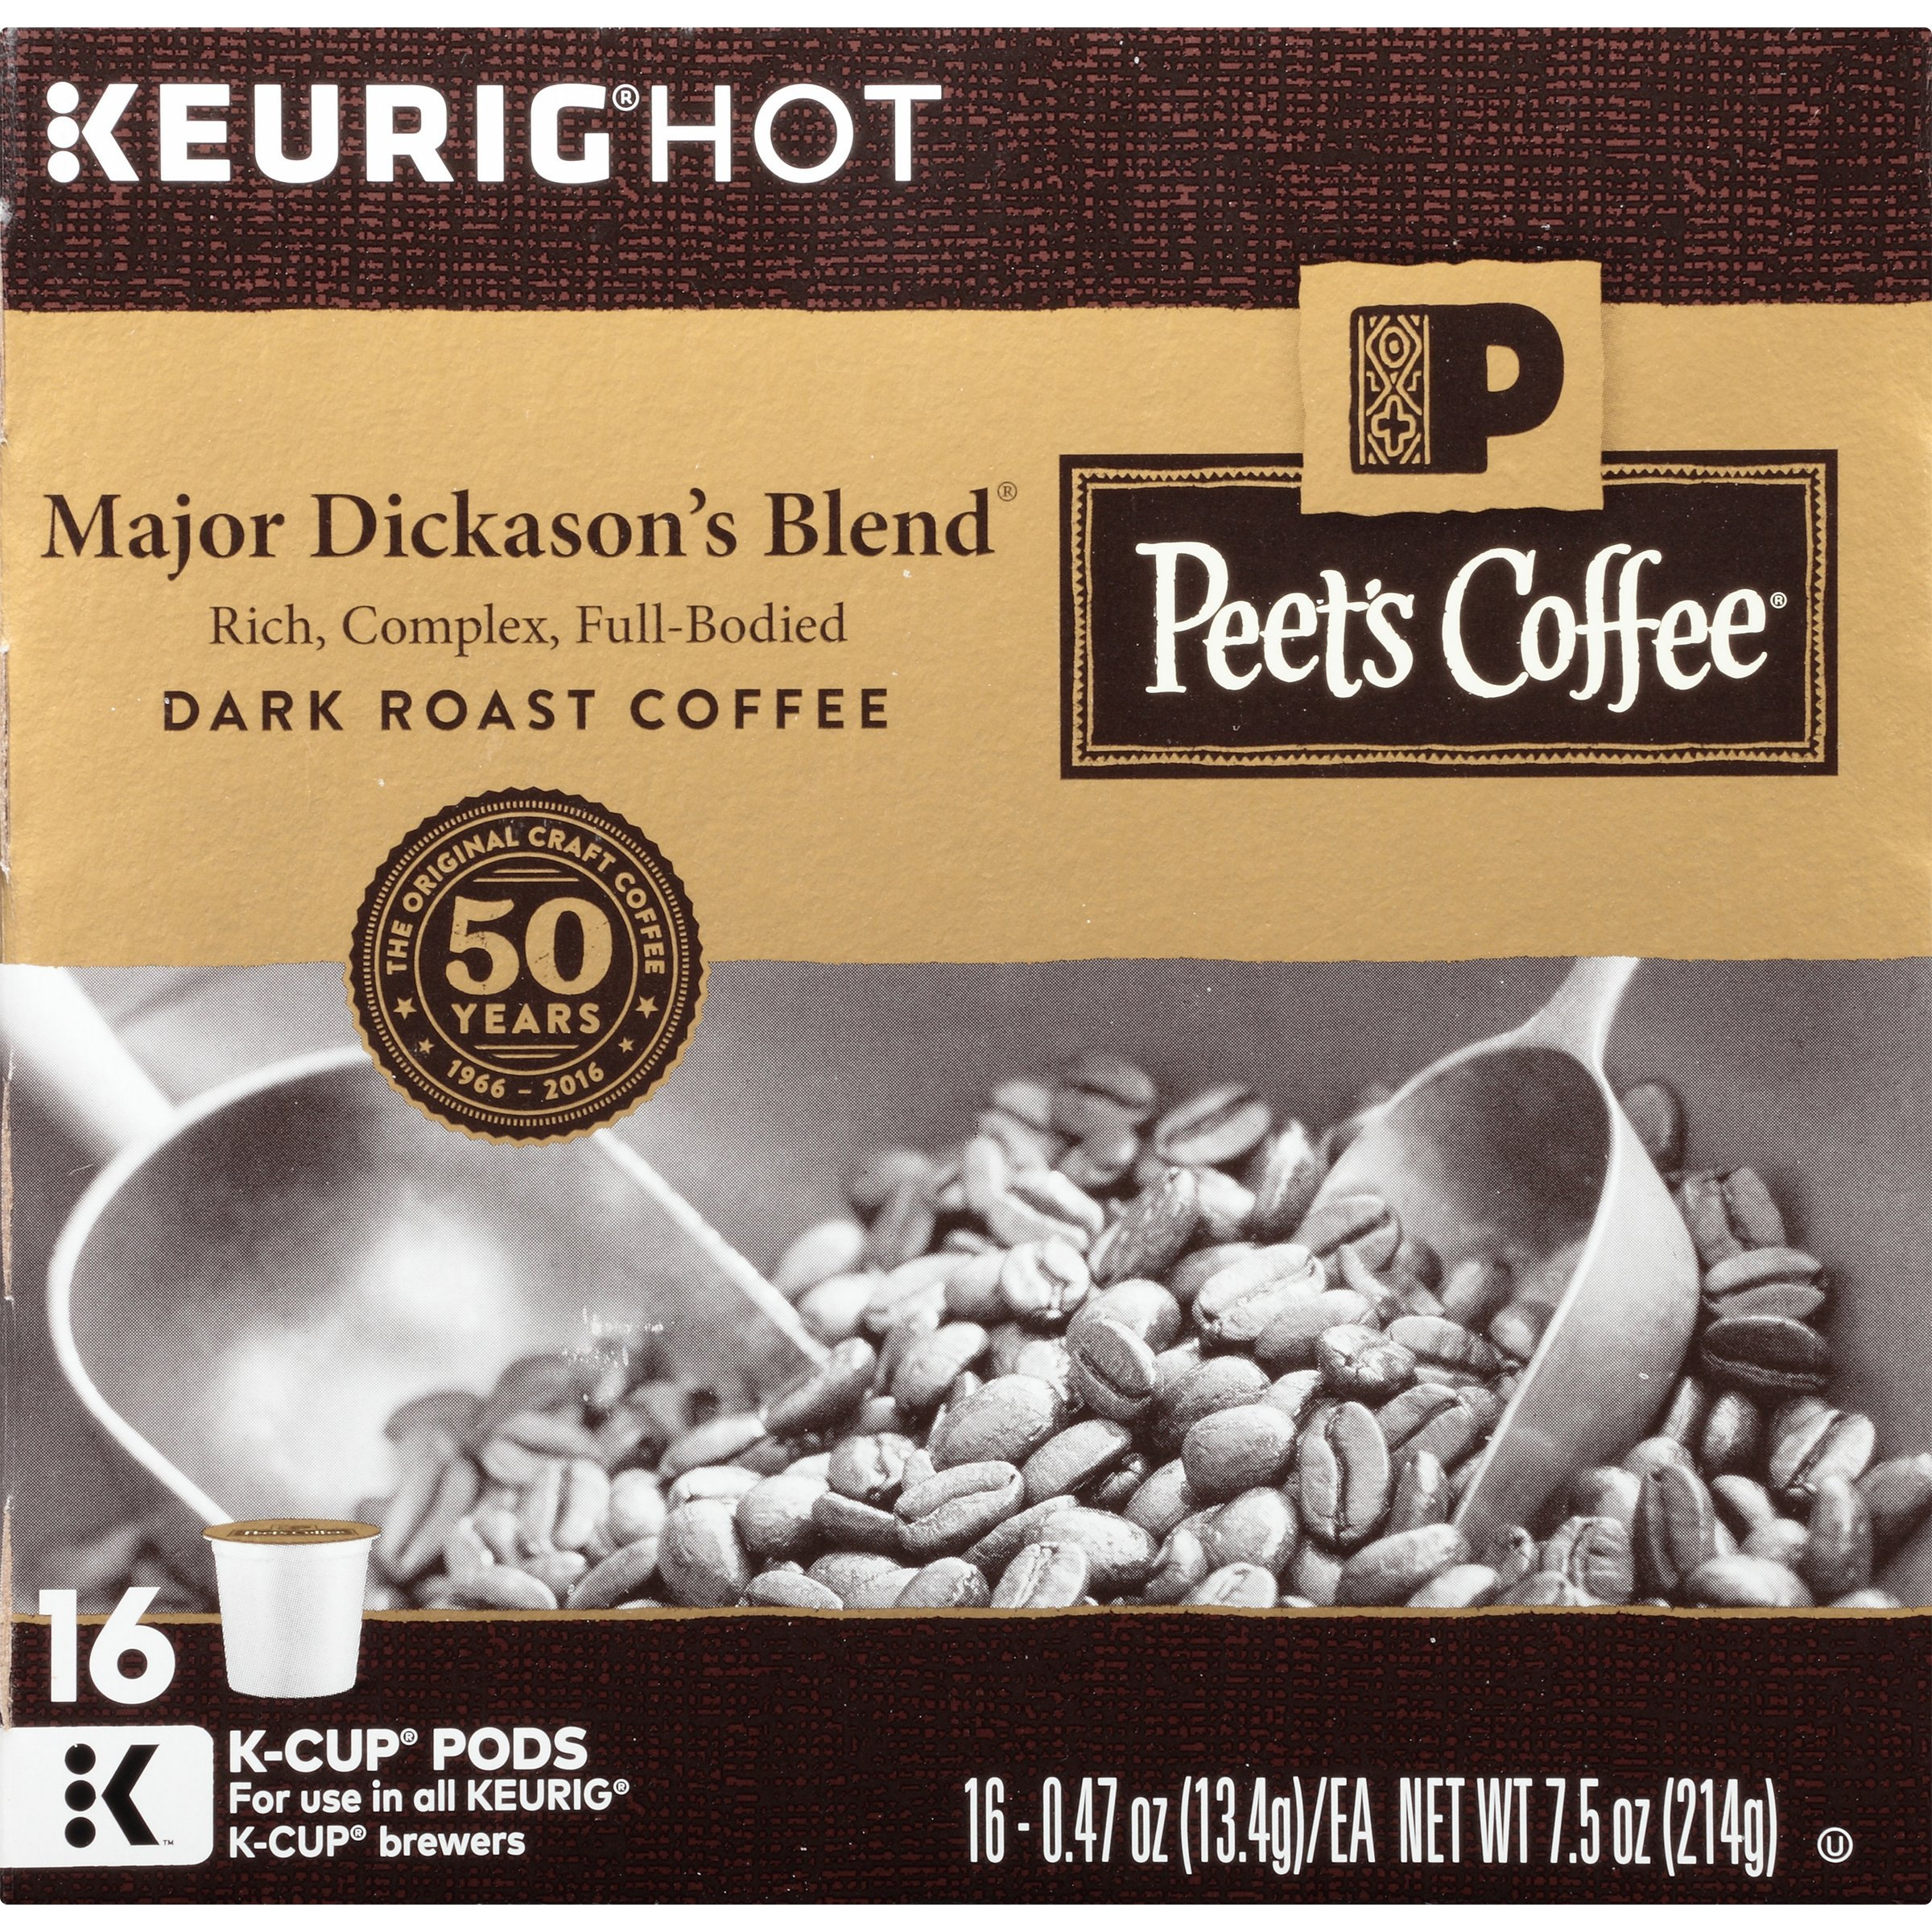 Peet's Coffee, Major Dickason's Blend, Dark Roast, 16 Count Single-Cup Coffee Pods, Rich, Smooth & Complex Blend w/ Full Bodied & Layered Flavor; for All Keurig K-Cup Brewers (Packaging May Vary)